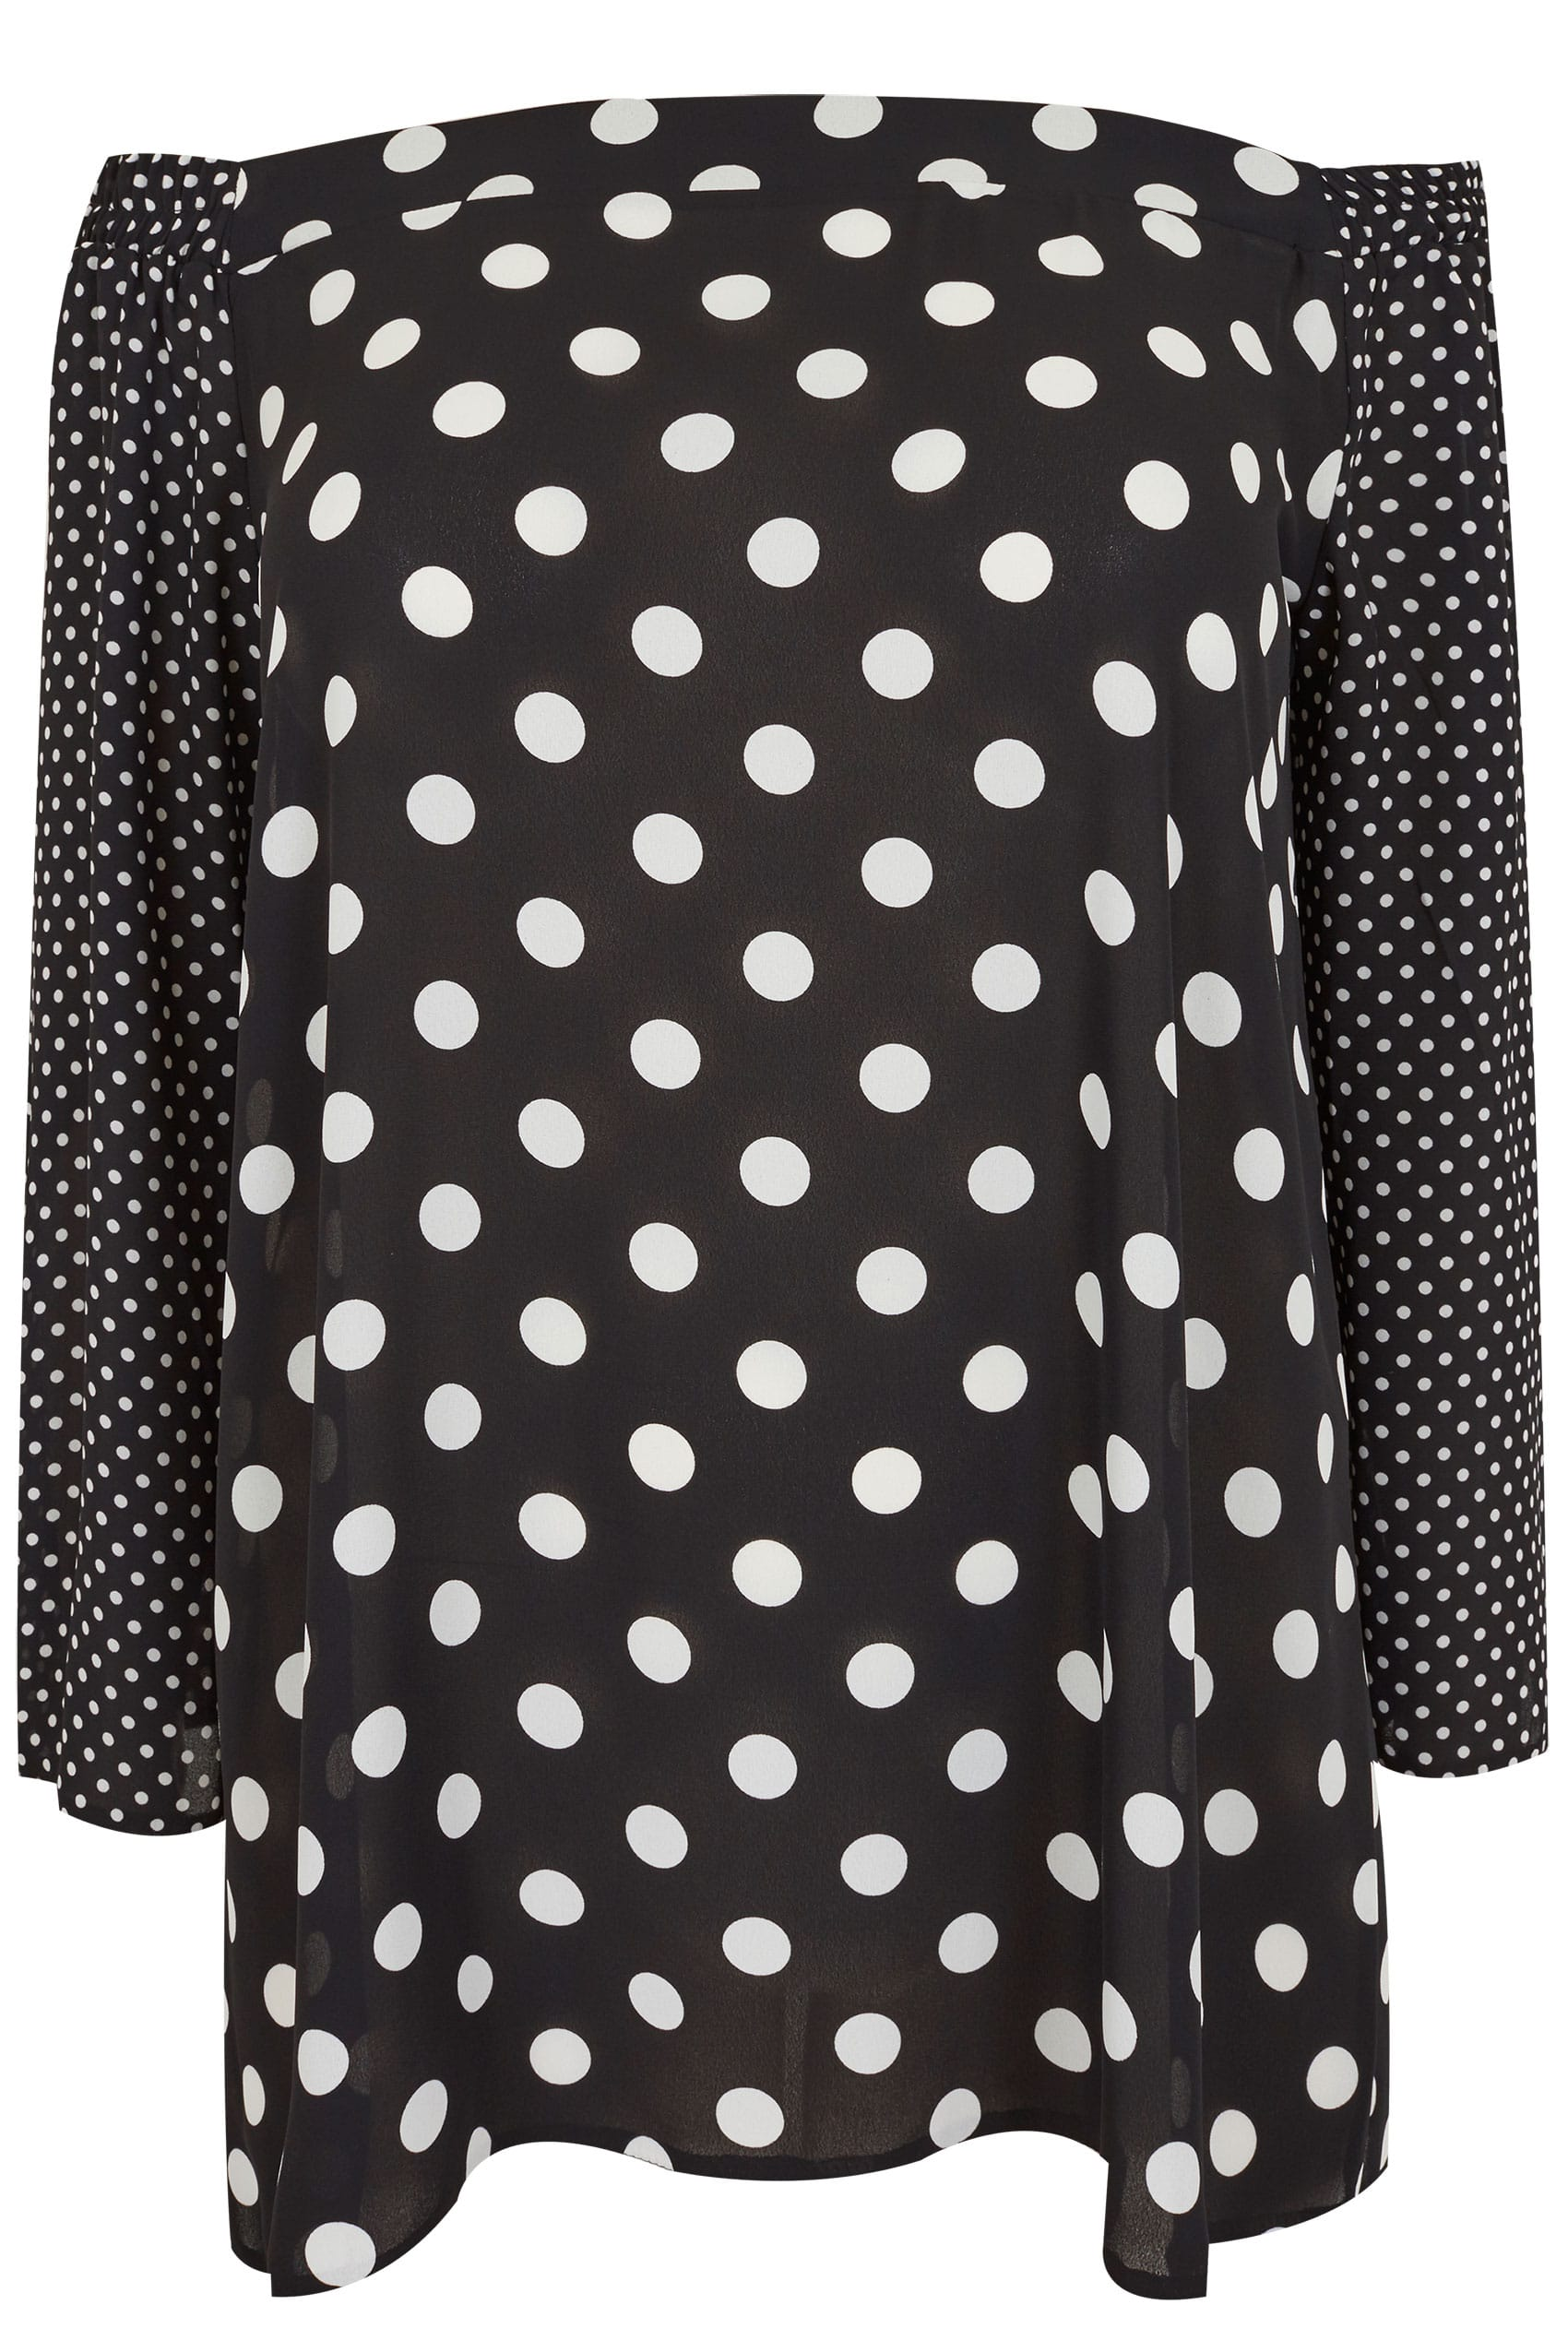 LIMITED COLLECTION Black & White Polka Dot Bardot Top ...